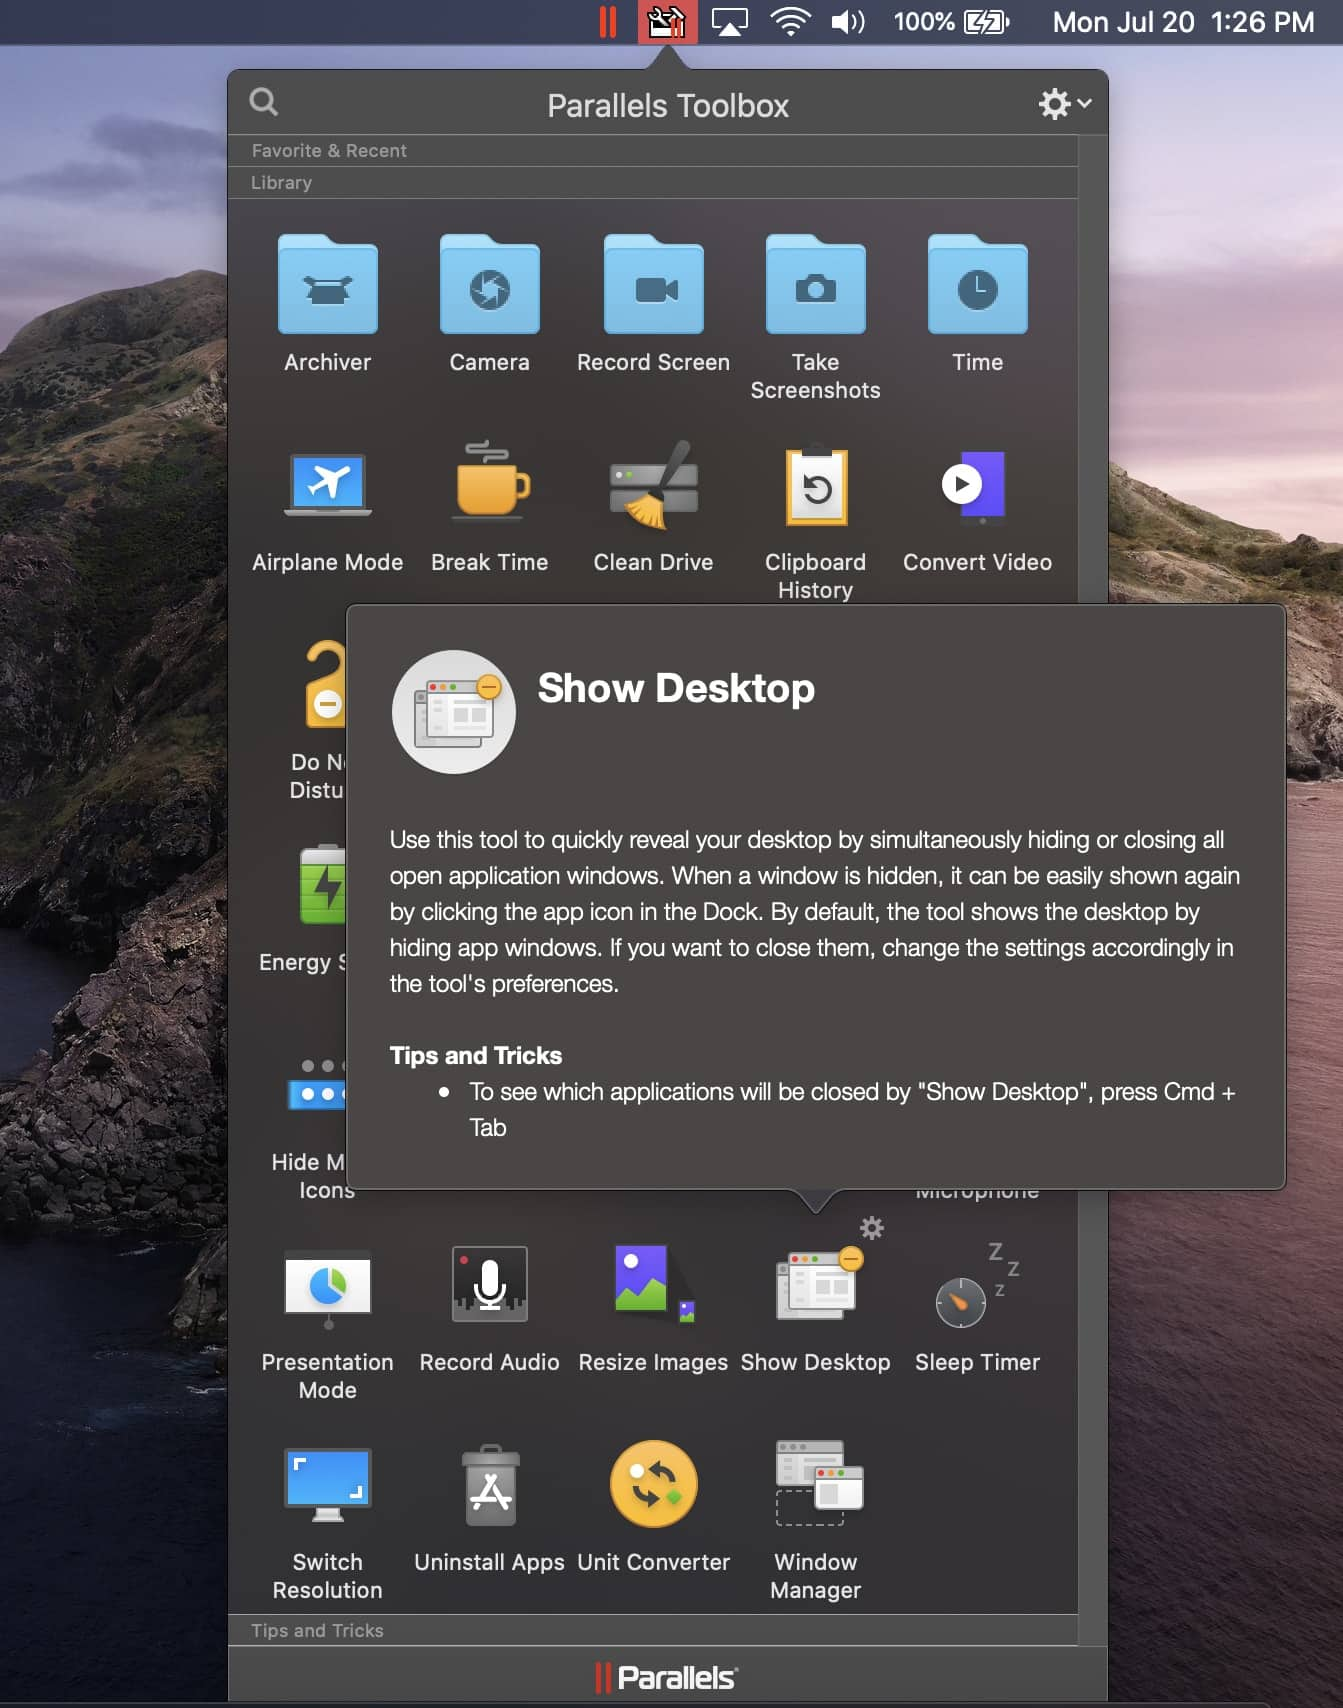 Parallels Toolbox Show Desktop macOS Screenshot